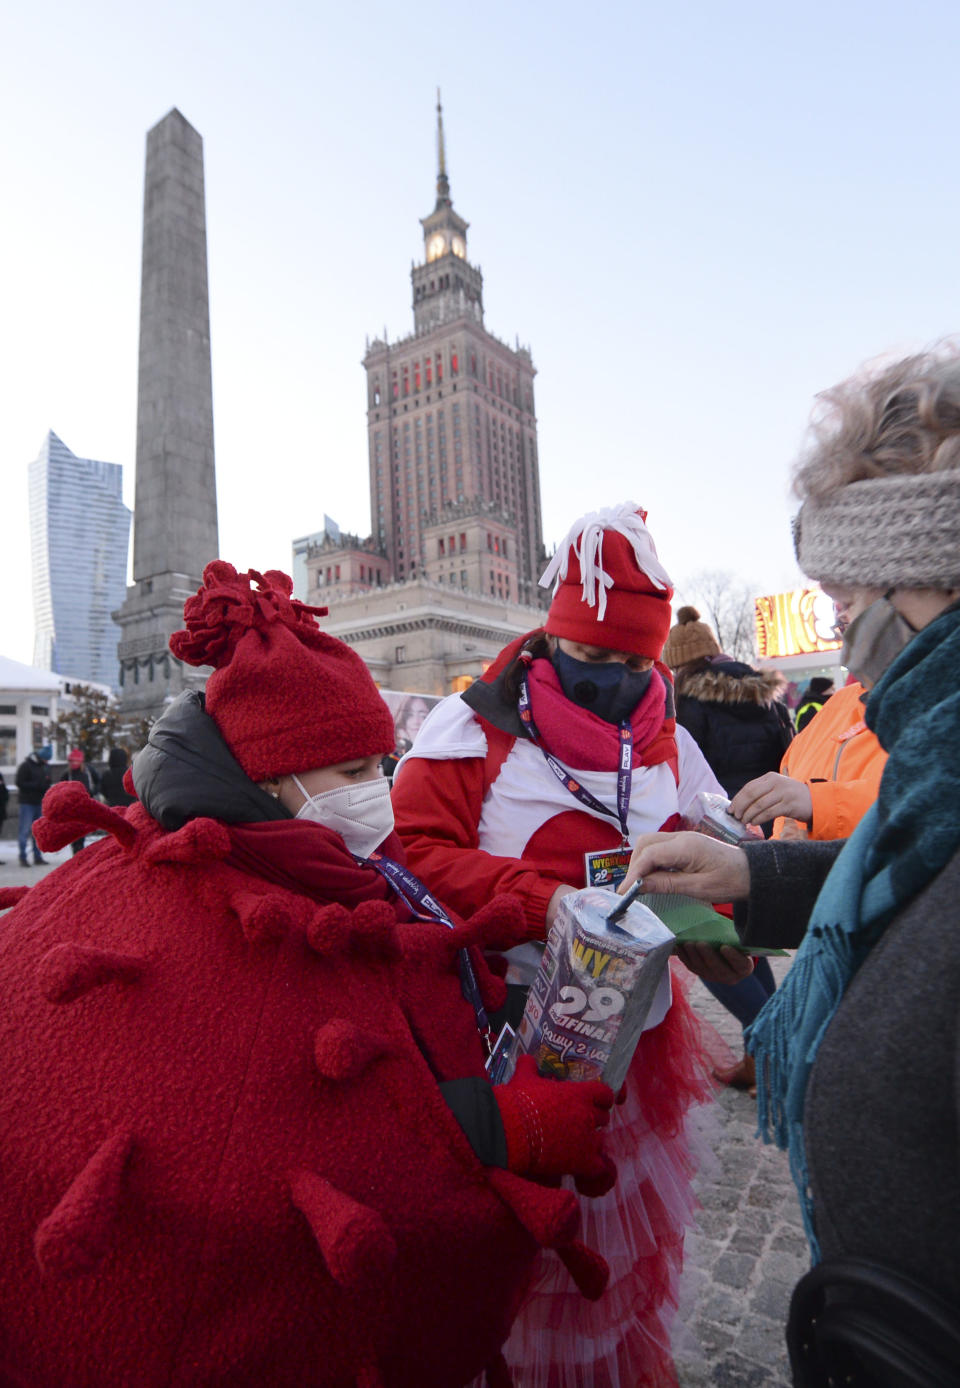 A child in a red costume collects money for Poland's most popular nationwide fundraiser for health purposes, the Great Orchestra of Christmas Charity, that was postponed by two weeks due to the pandemic, in downtown Warsaw, Poland, on Sunday, Jan. 31, 2021. Anti-government protesters angry about a near-total abortion ban suspended their marches for the weekend to show solidarity and ensure that they didn't steal the spotlight from the event. (AP Photo/Czarek Sokolowski)